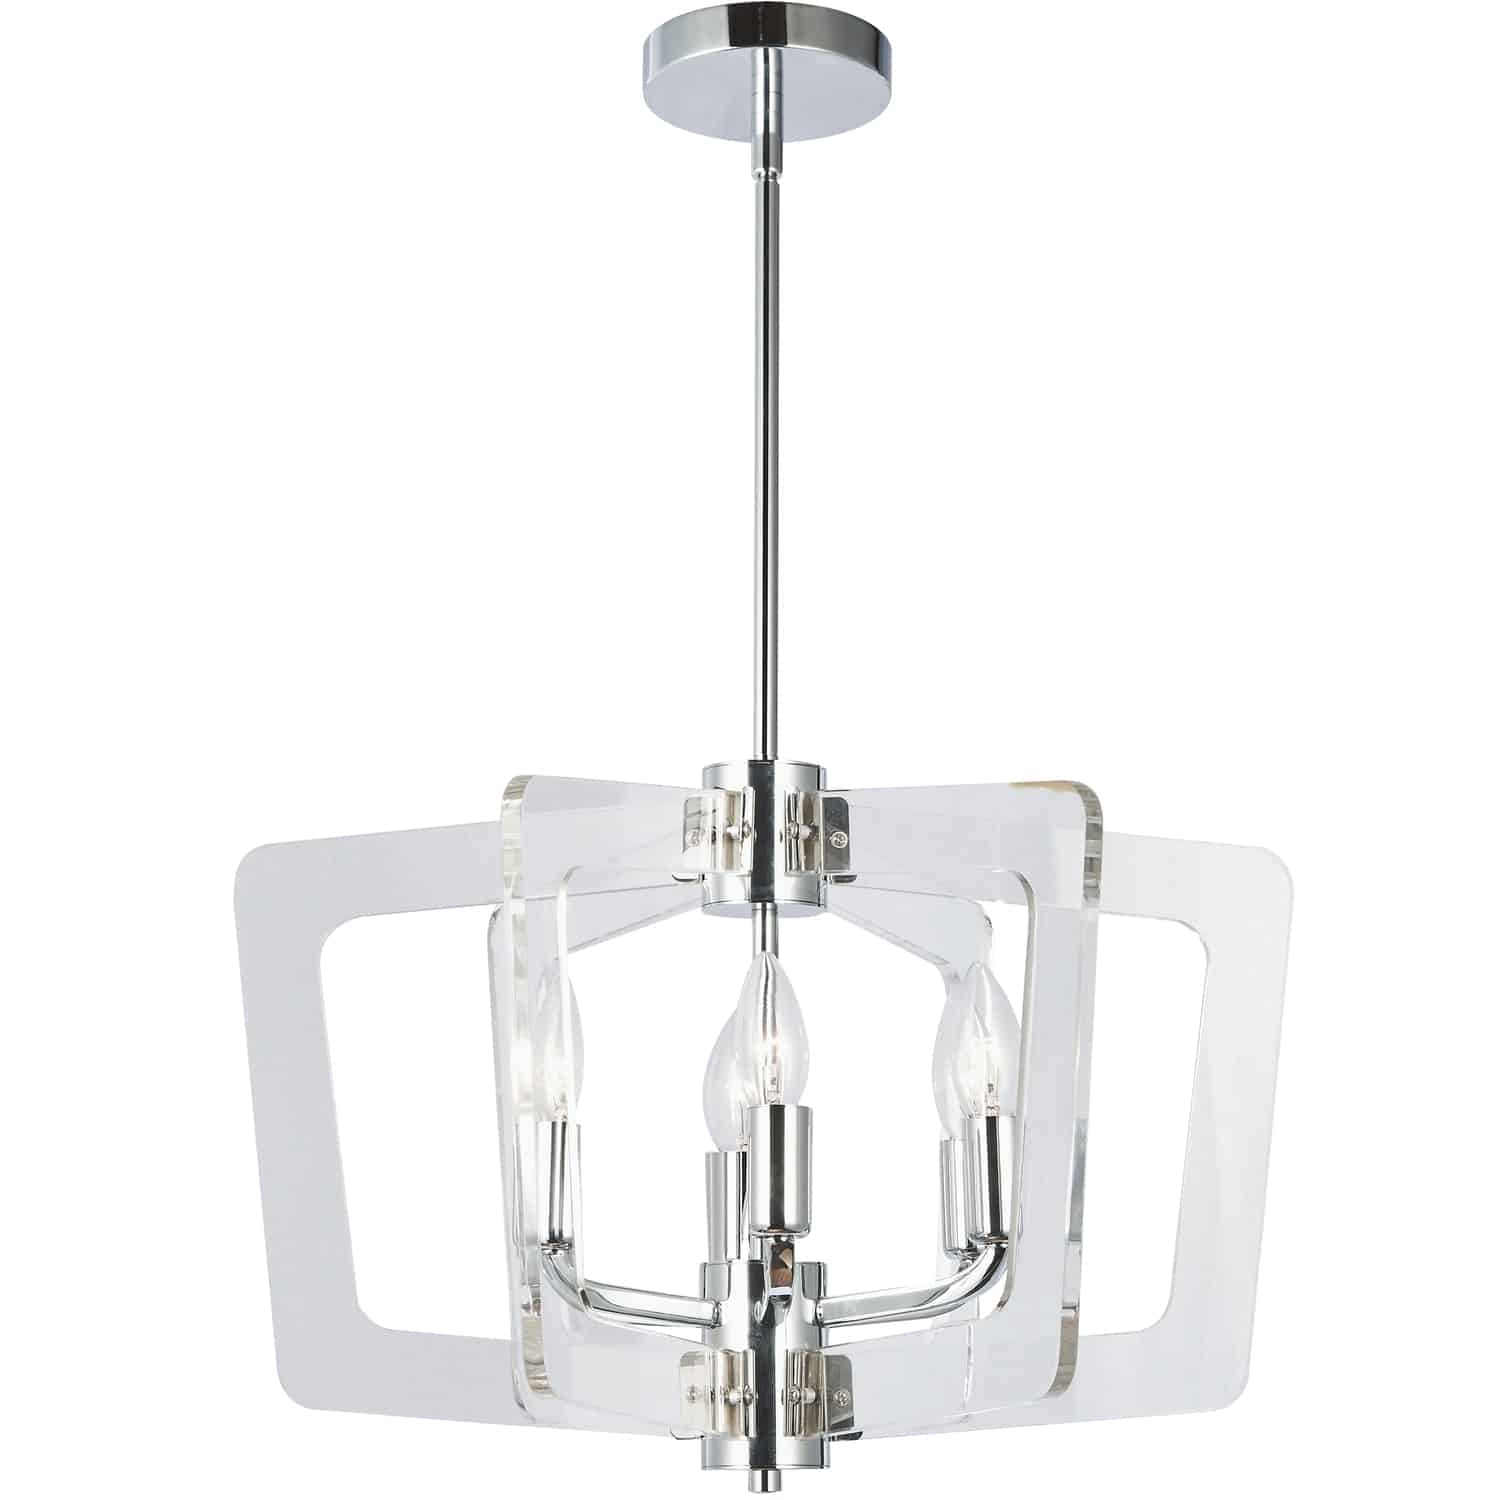 6 Light Incandescent Chandelier, Polished Chrome with Acrylic Arms